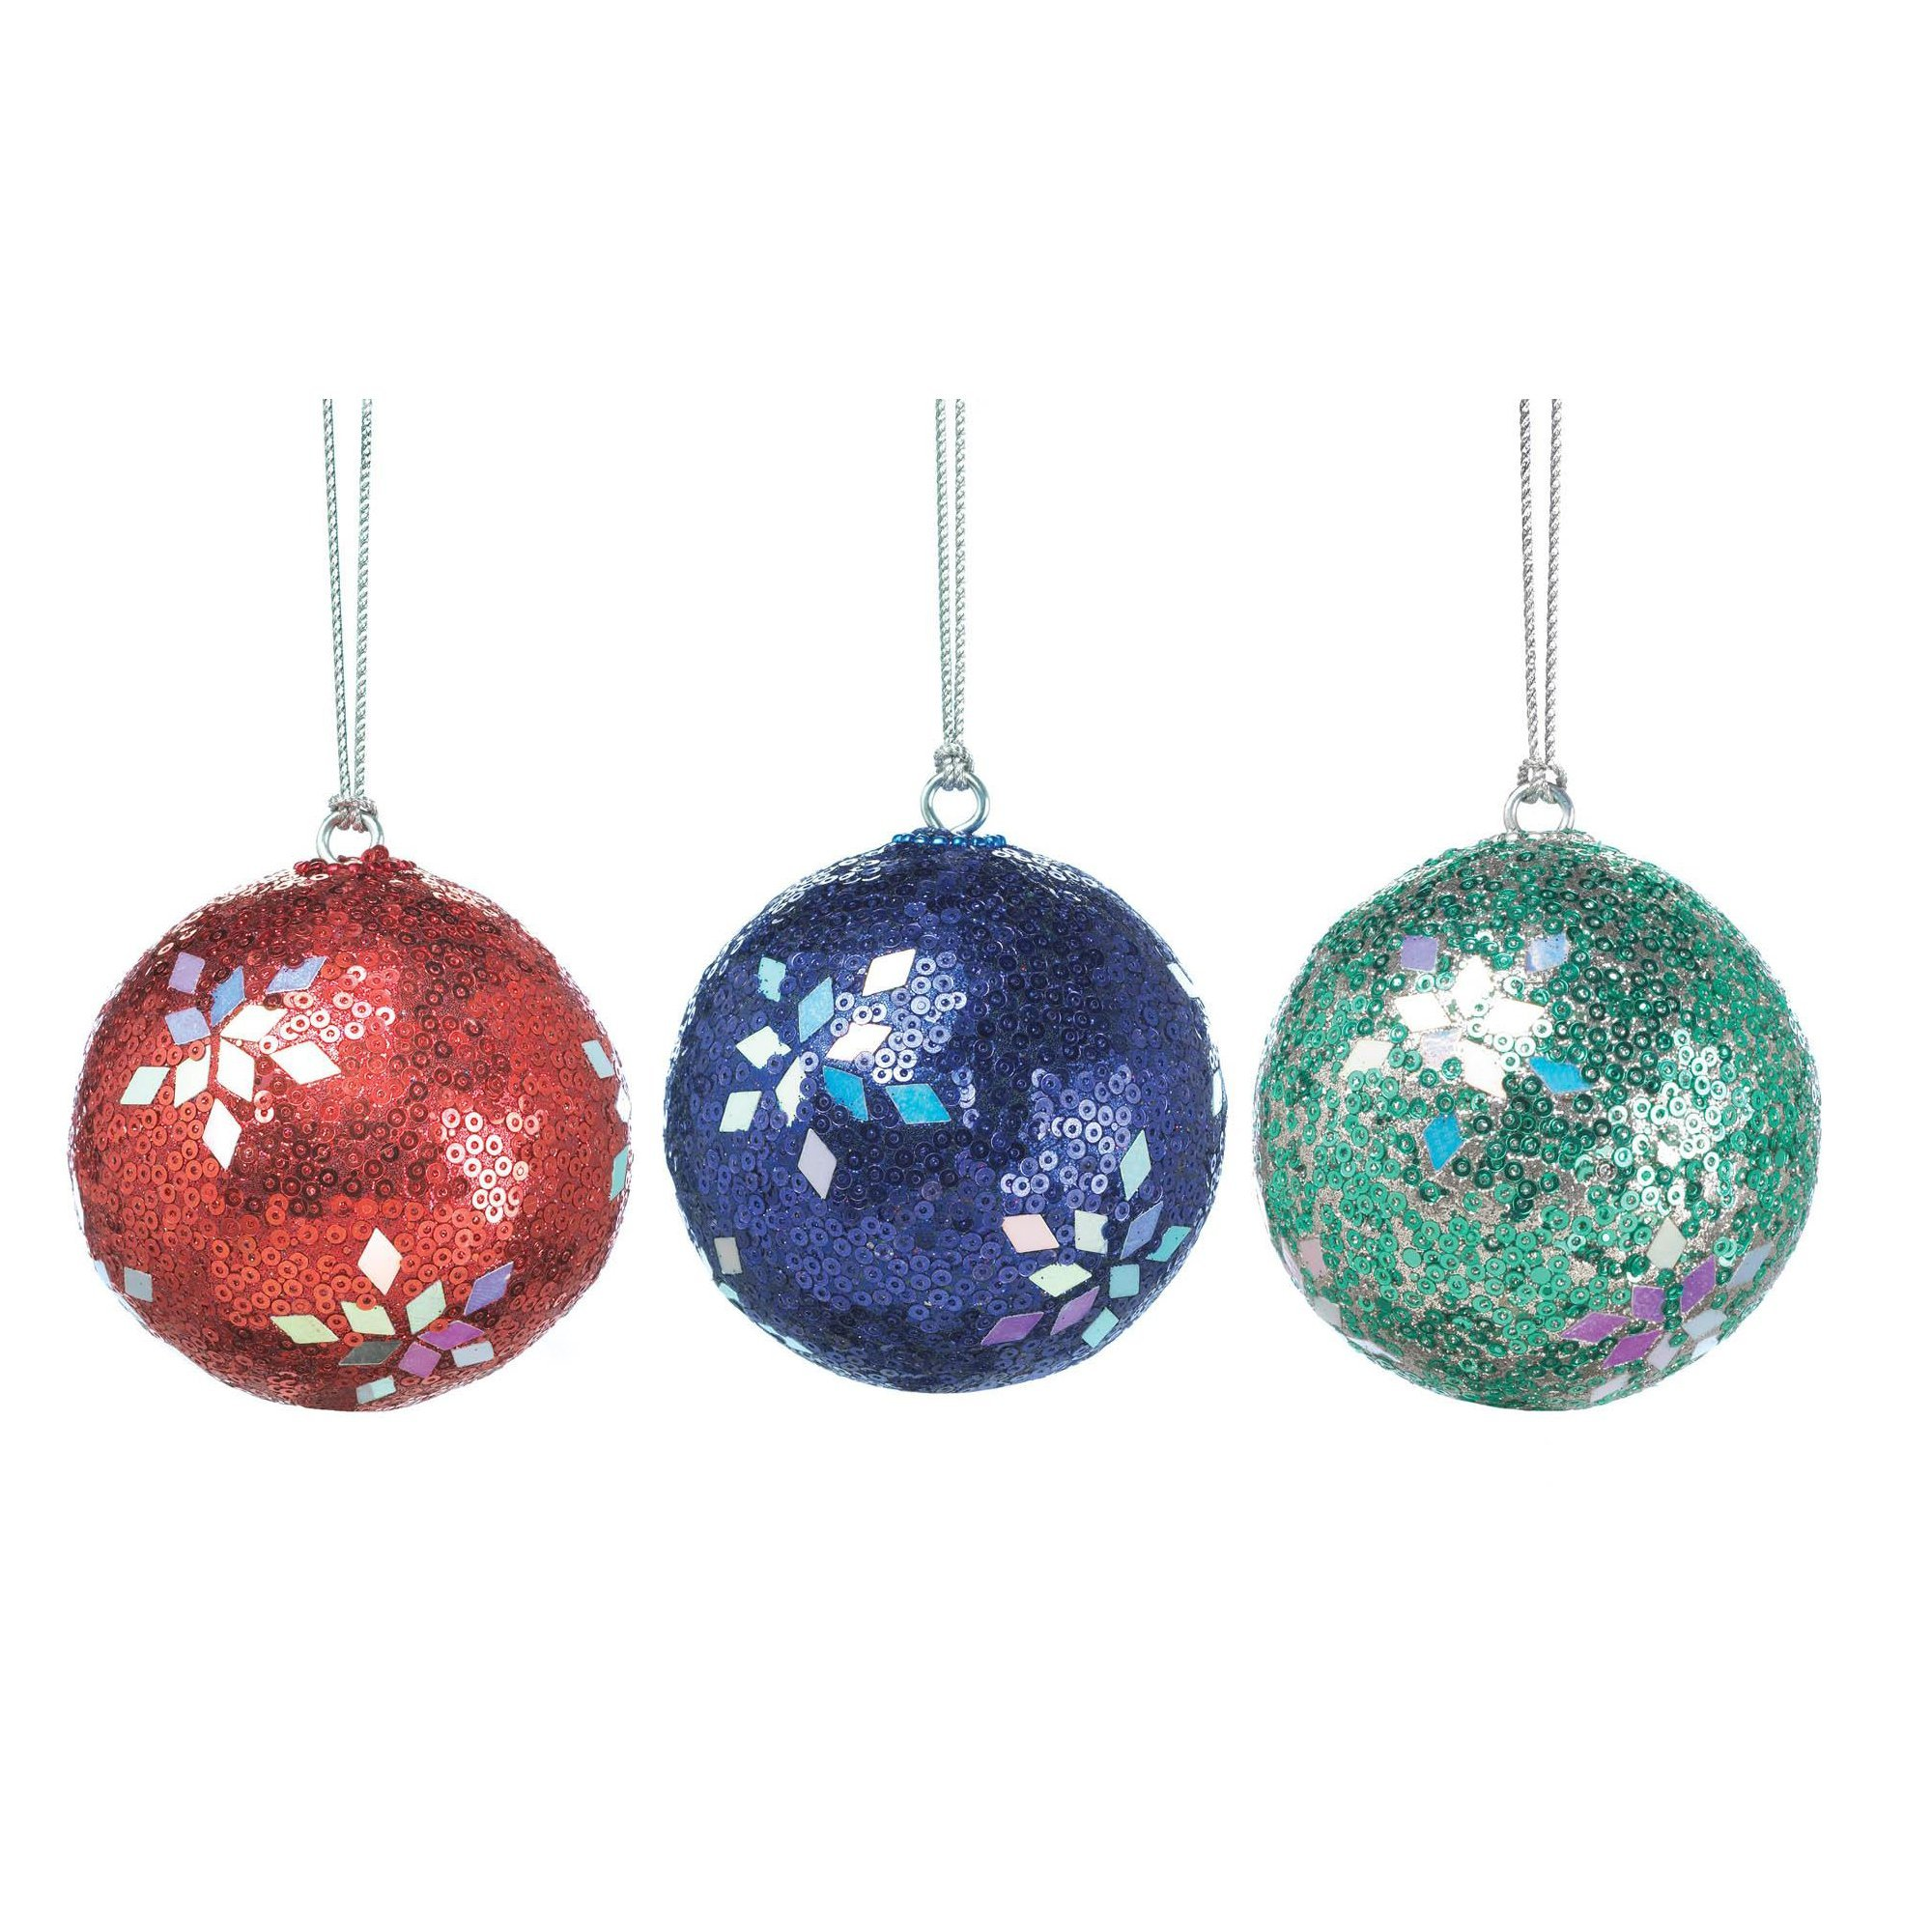 Christmas Ornament Balls, Shiny Plastic Ornament Balls for Home (Sold by Case, Pack of 24)